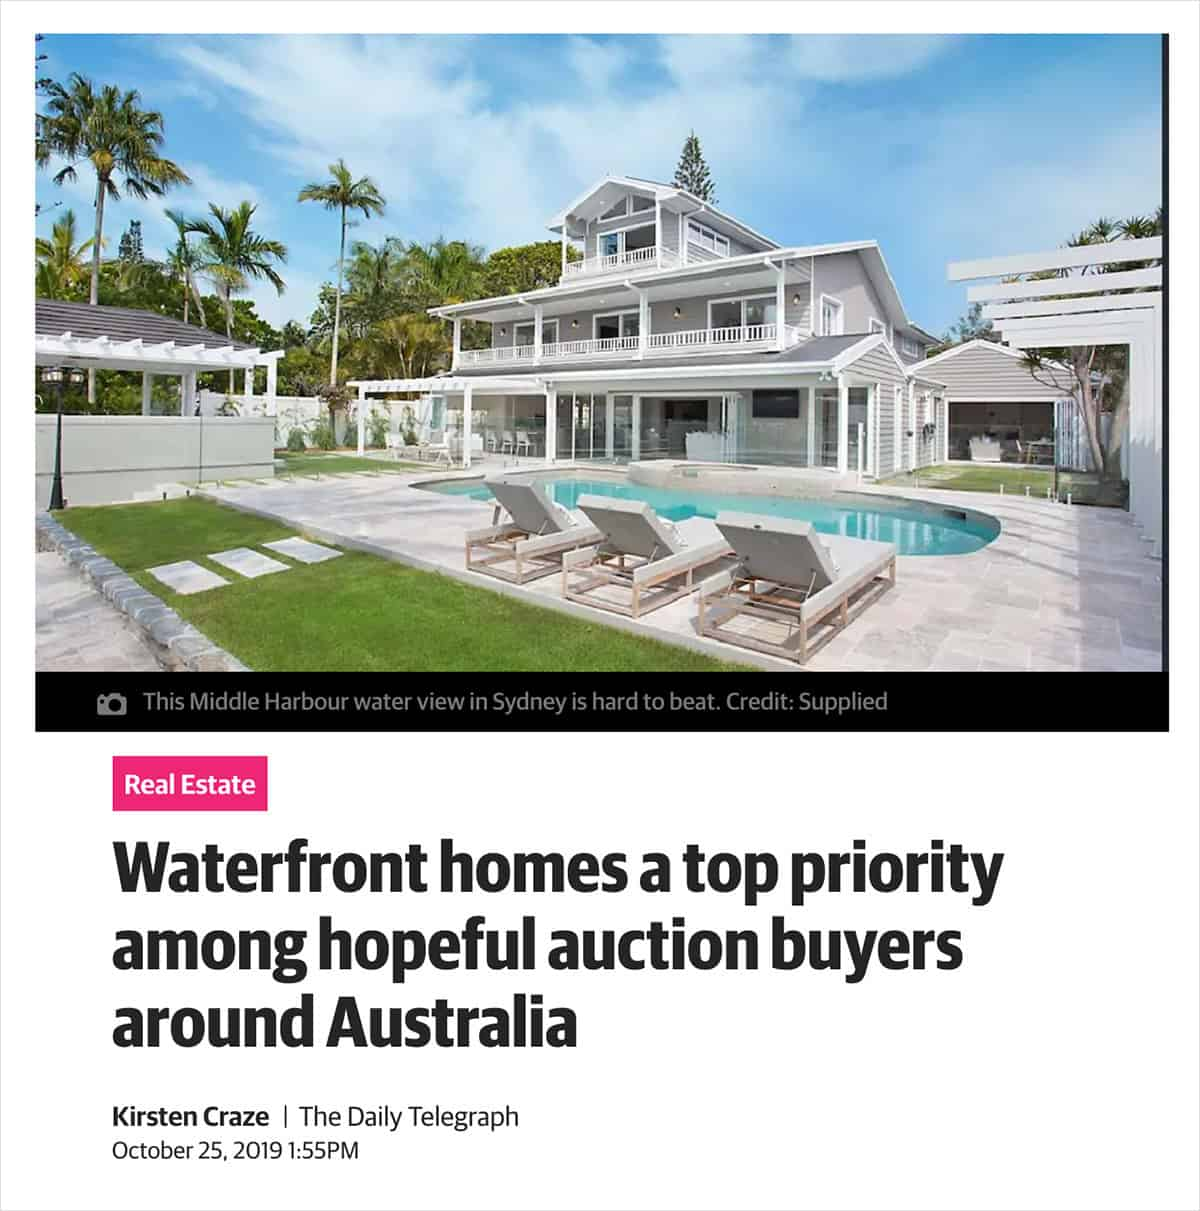 Grand Gold Coast Mansion a Priority - Featured in Perth Now